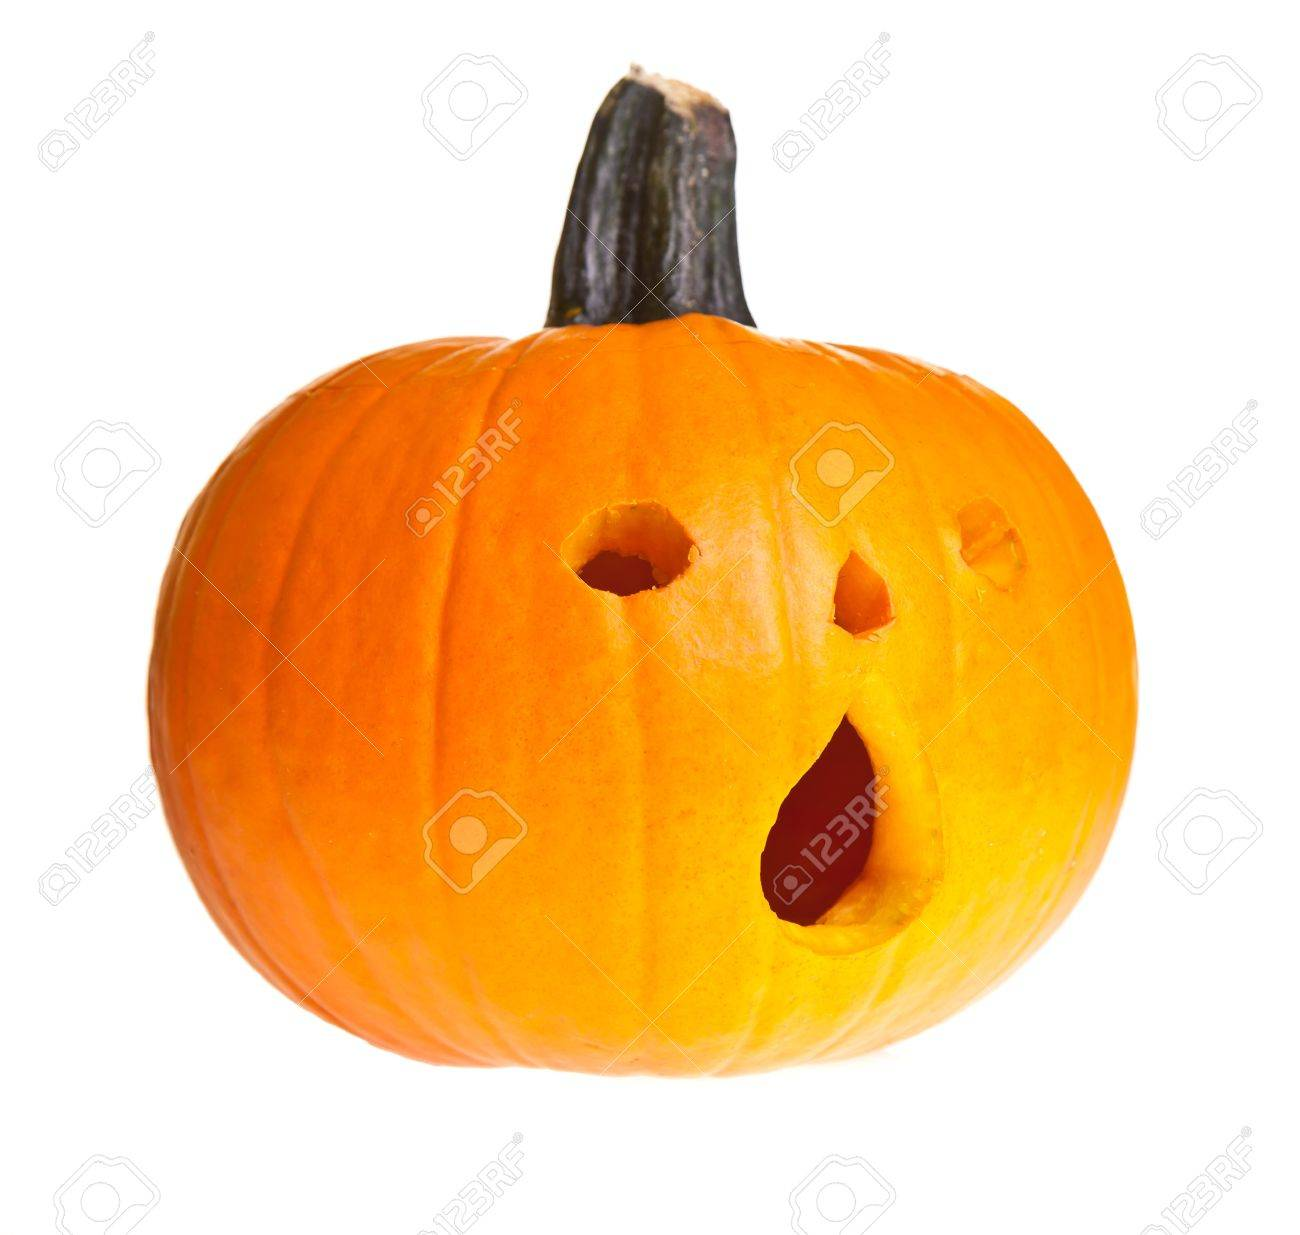 Halloween Scary Jack O Lantern Pumpkin Face Isolated On White Stock Photo Picture And Royalty Free Image Image 10546214